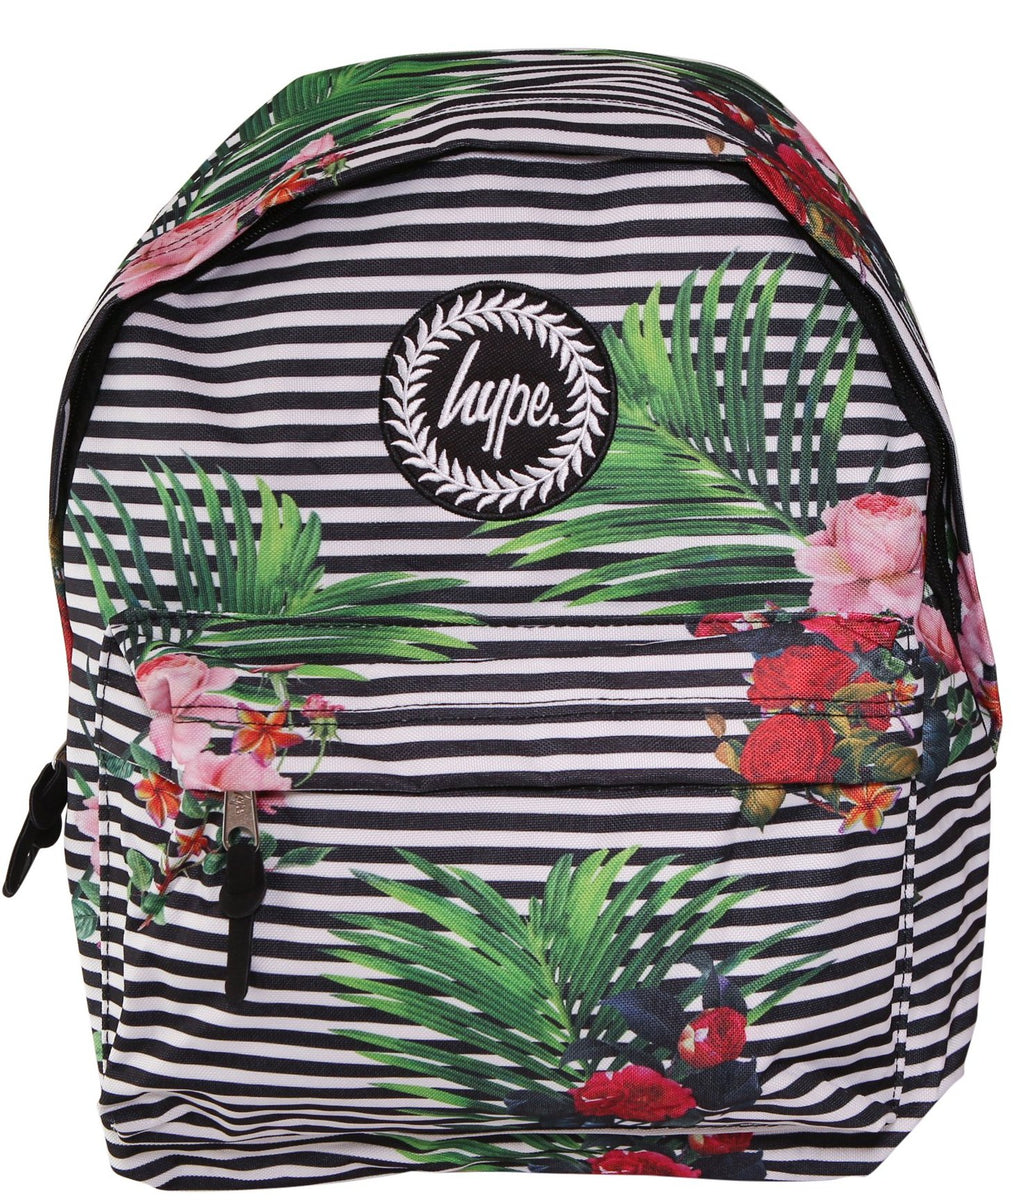 HYPE FLORAL STRIPE BACKPACK RUCKSACK BAG - BLACK/WHITE